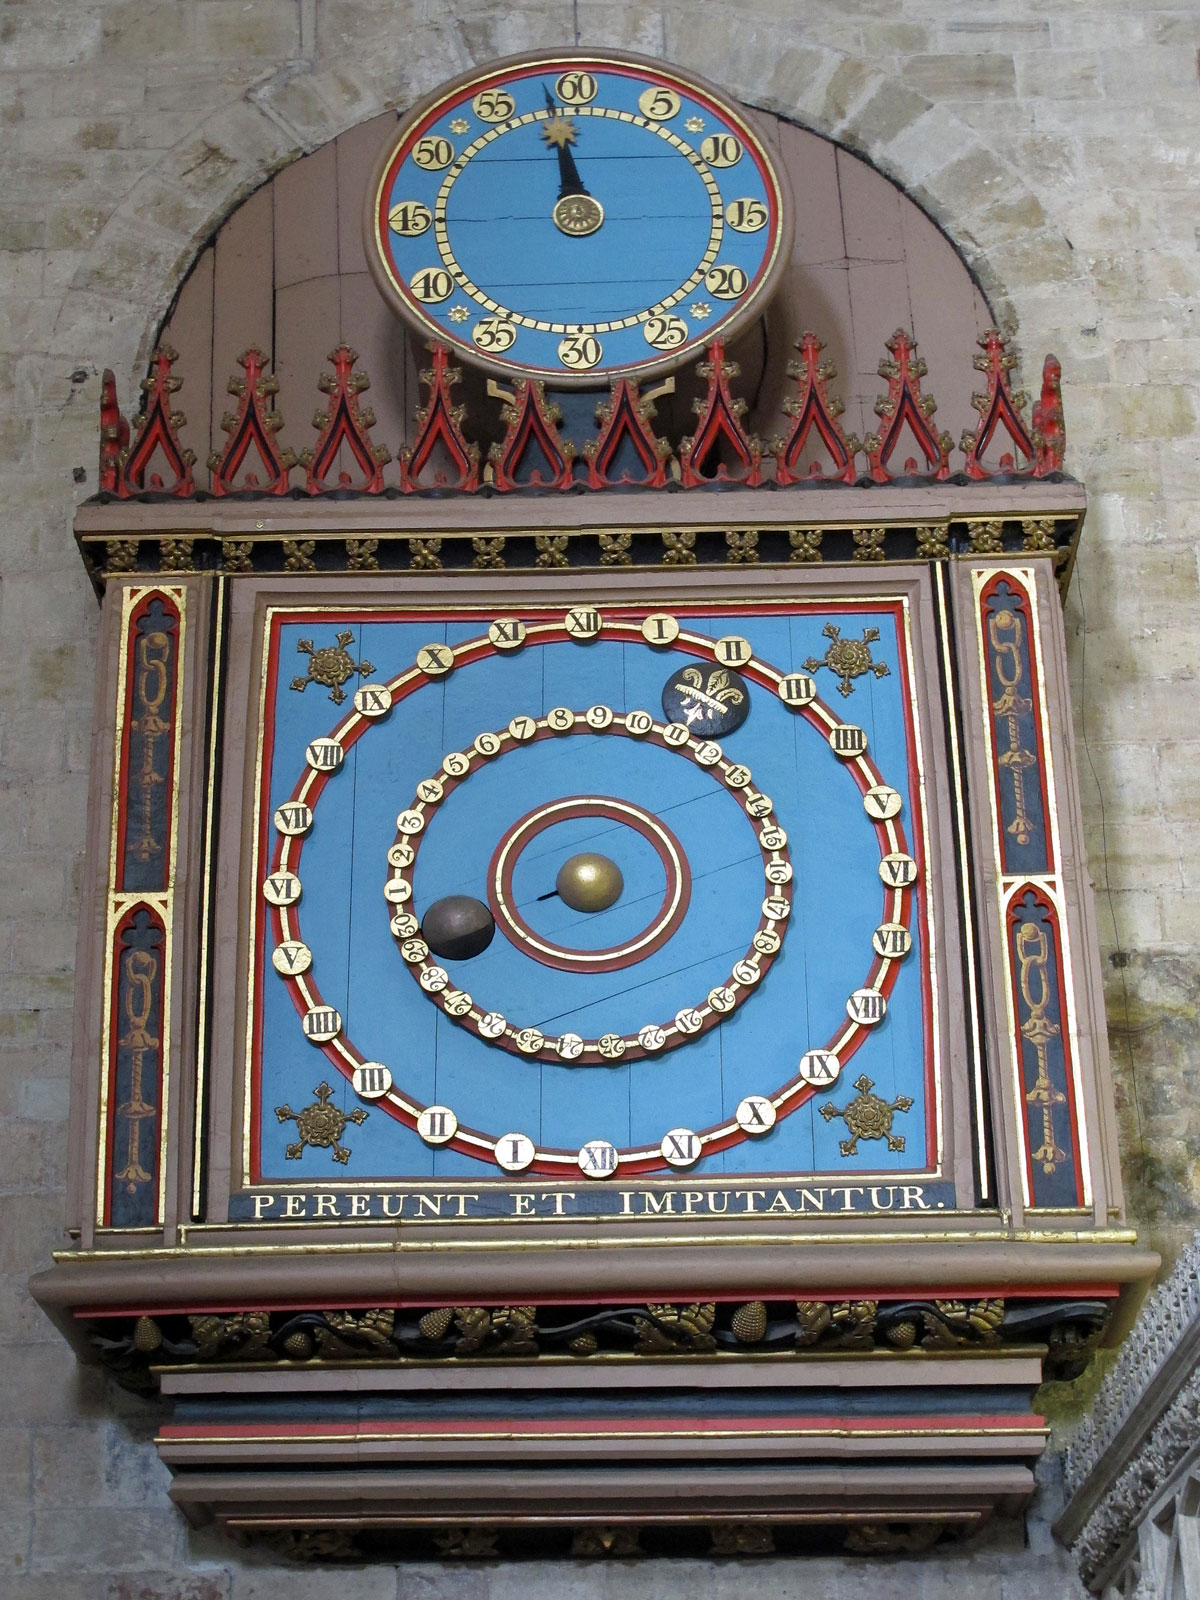 The 15th century Astronomical Clock